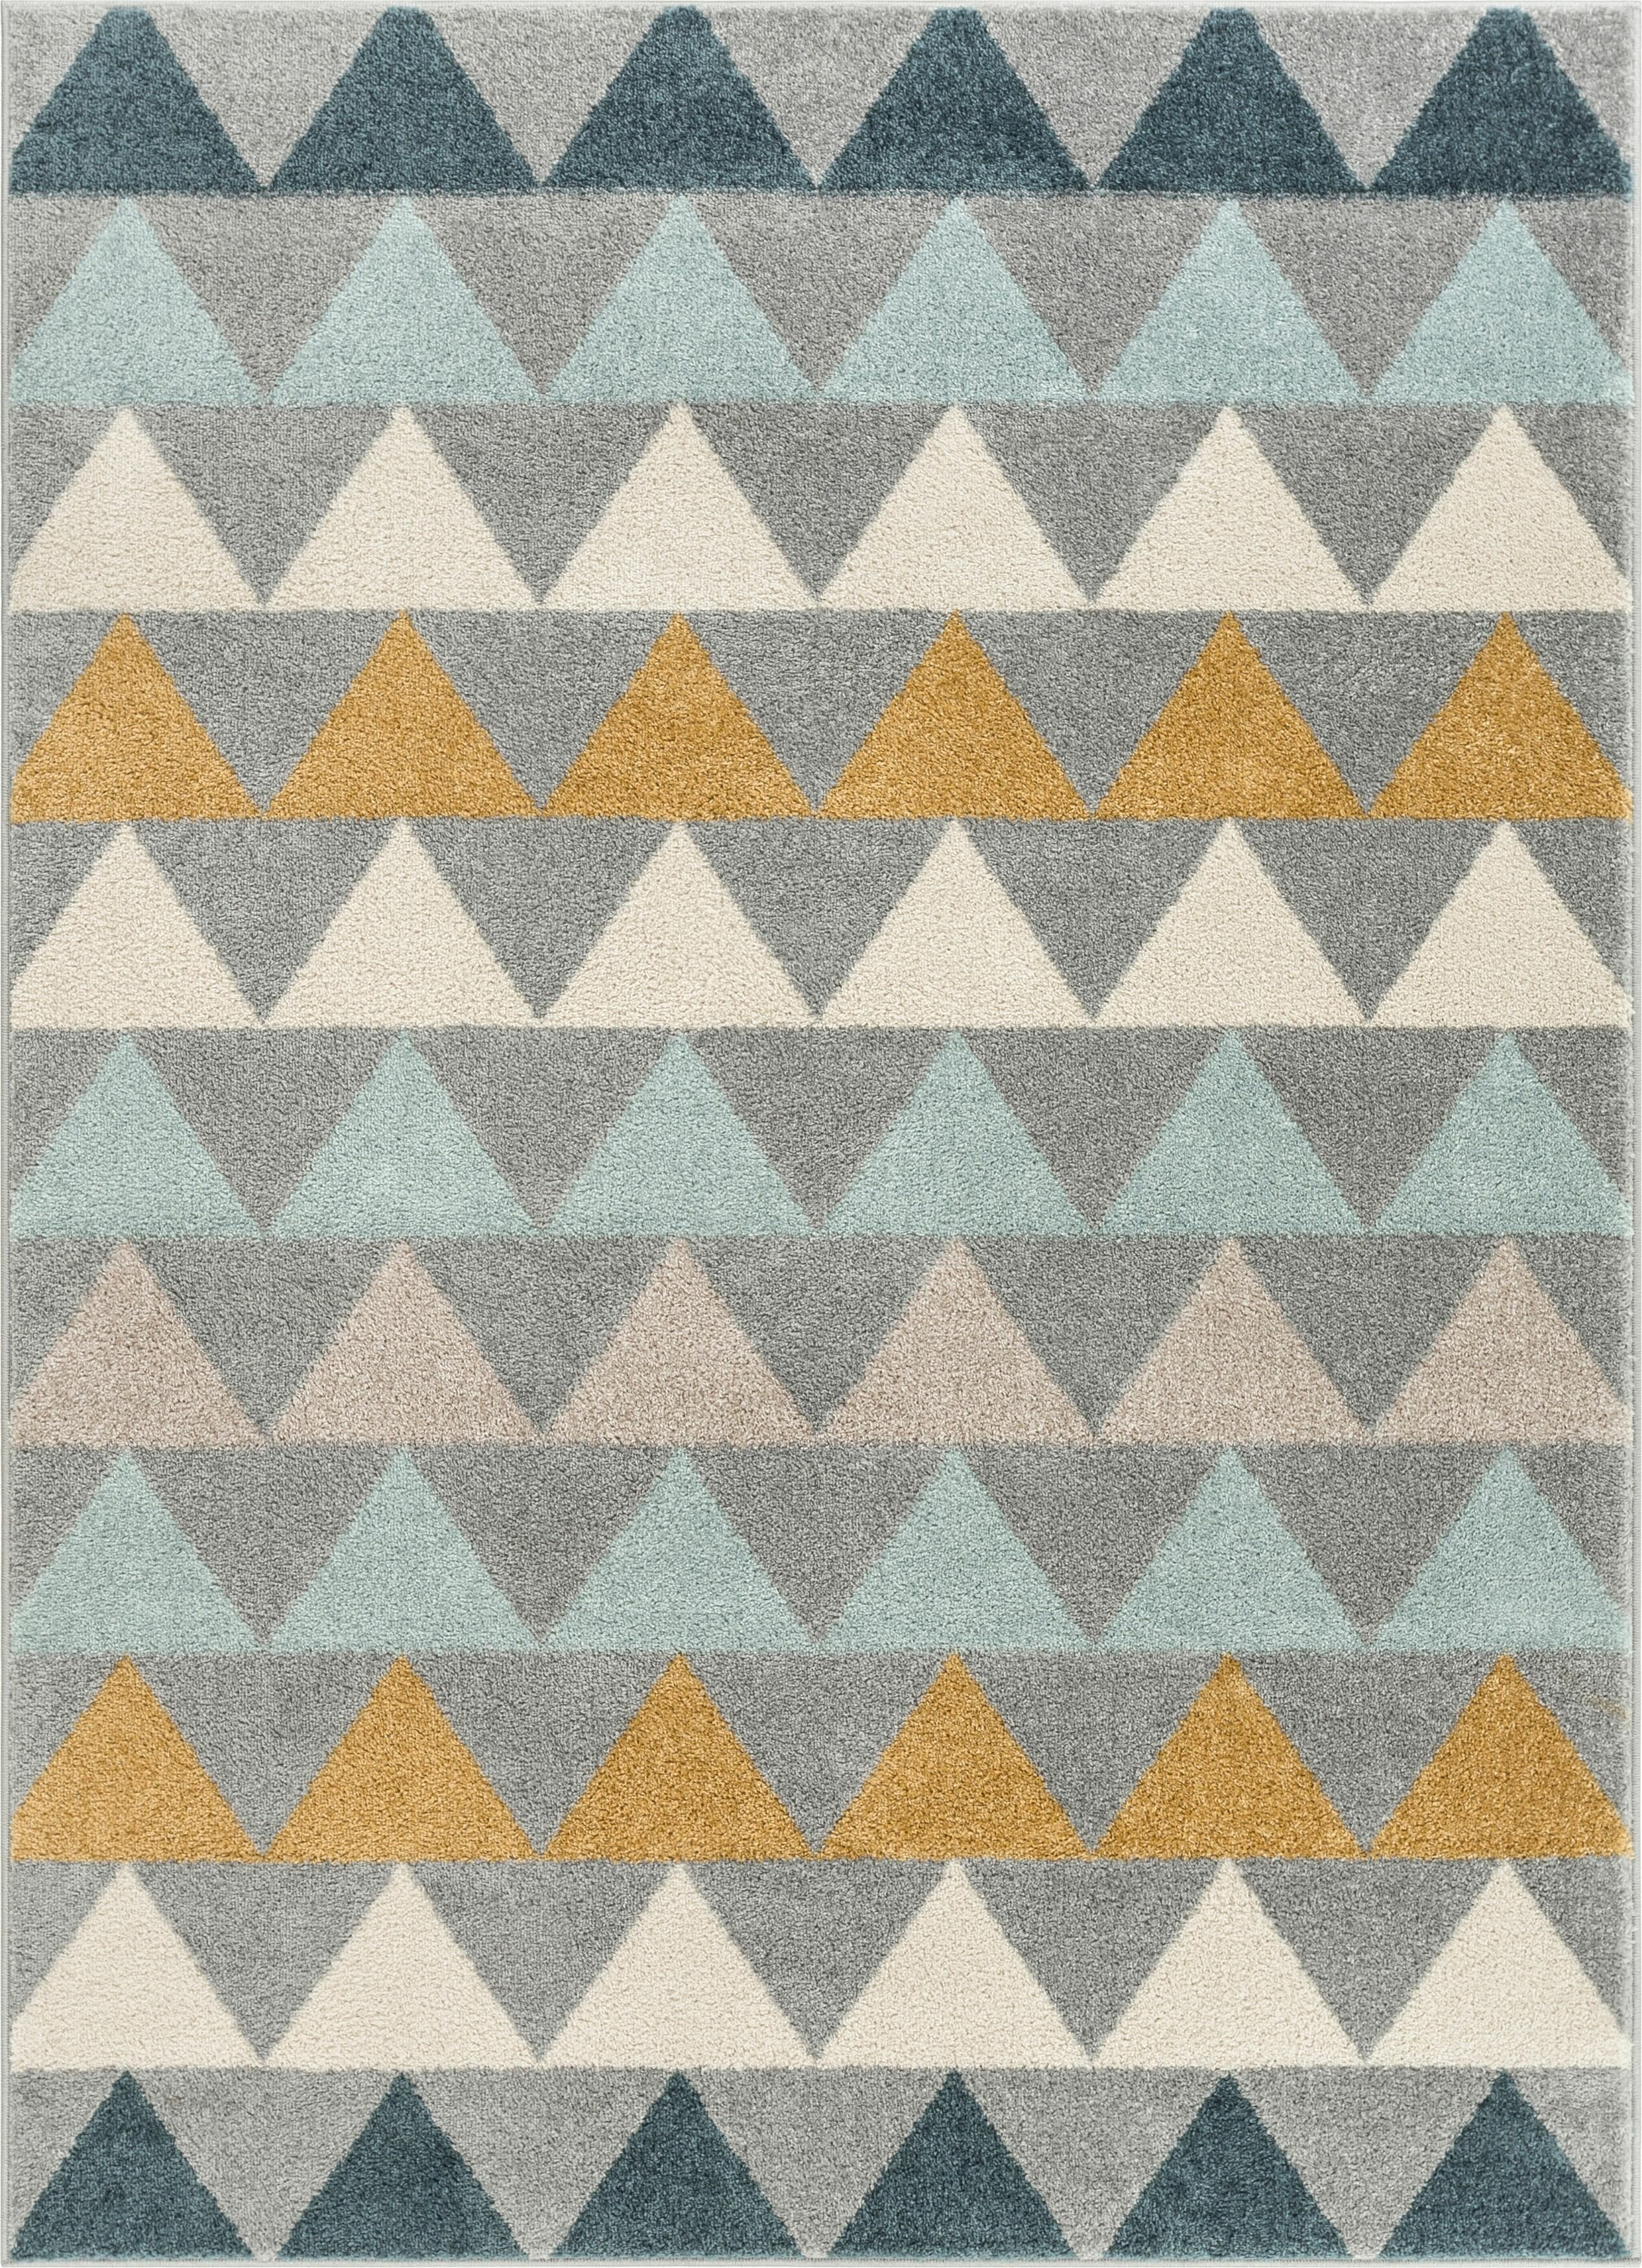 Picture of: Well Woven Mystic Modern Vintage Geometric Gray Blue Yellow Area Rug Reviews Wayfair